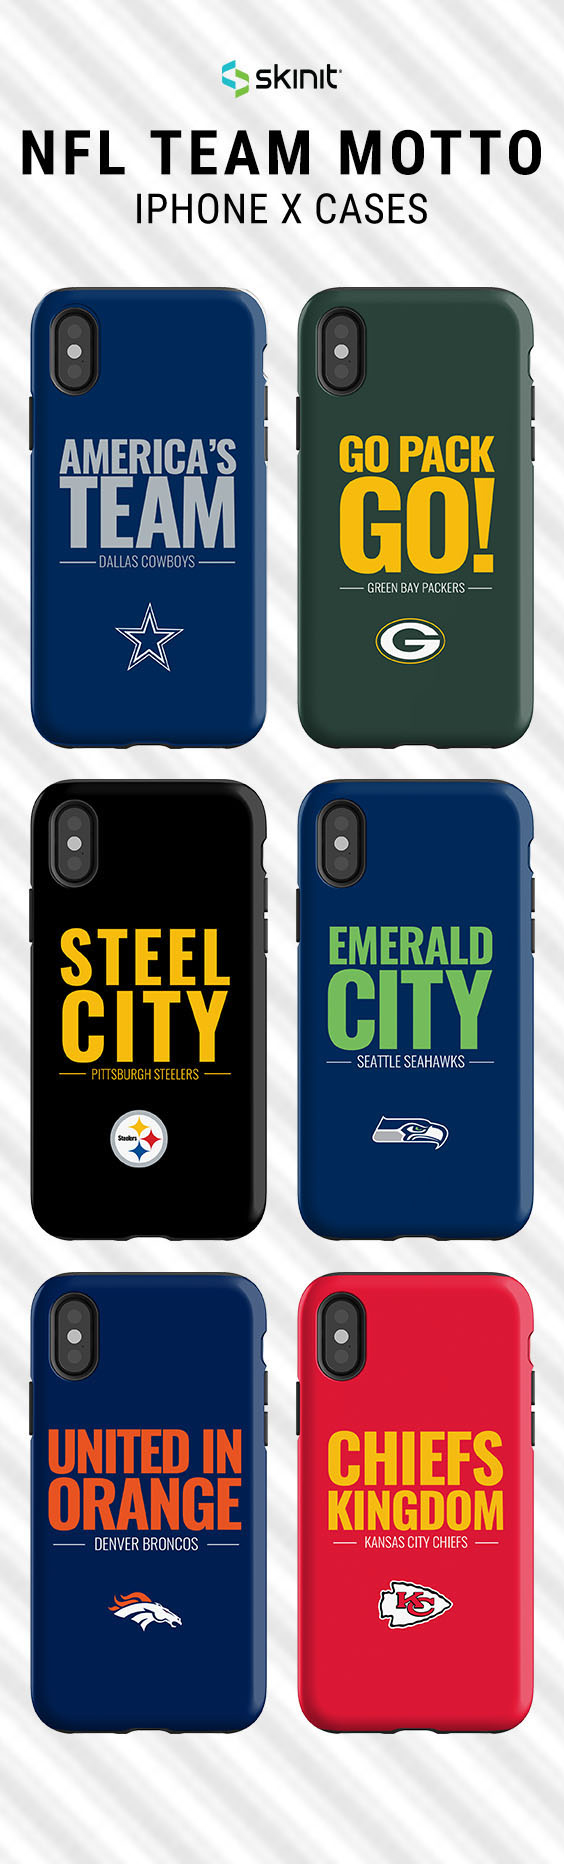 Rep Your Team With Our Team Motto Series Designs Explore Popular Nfl Iphone X Case Designs From Skinit X Nfl Skinit Has Partnered With Nf Nfl Teams Nfl Motto